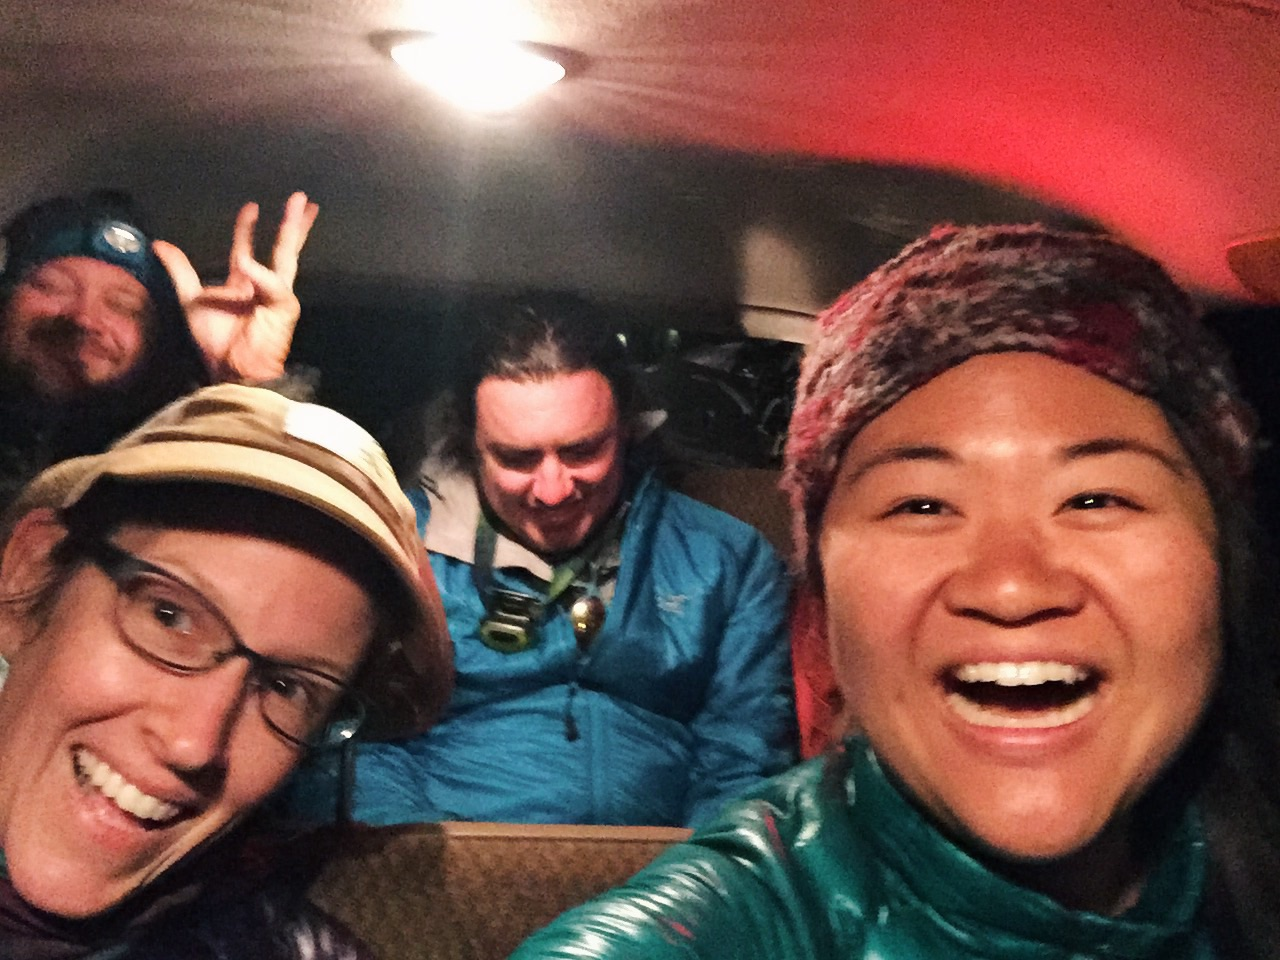 We all squished into Chrissy's van to the motel.